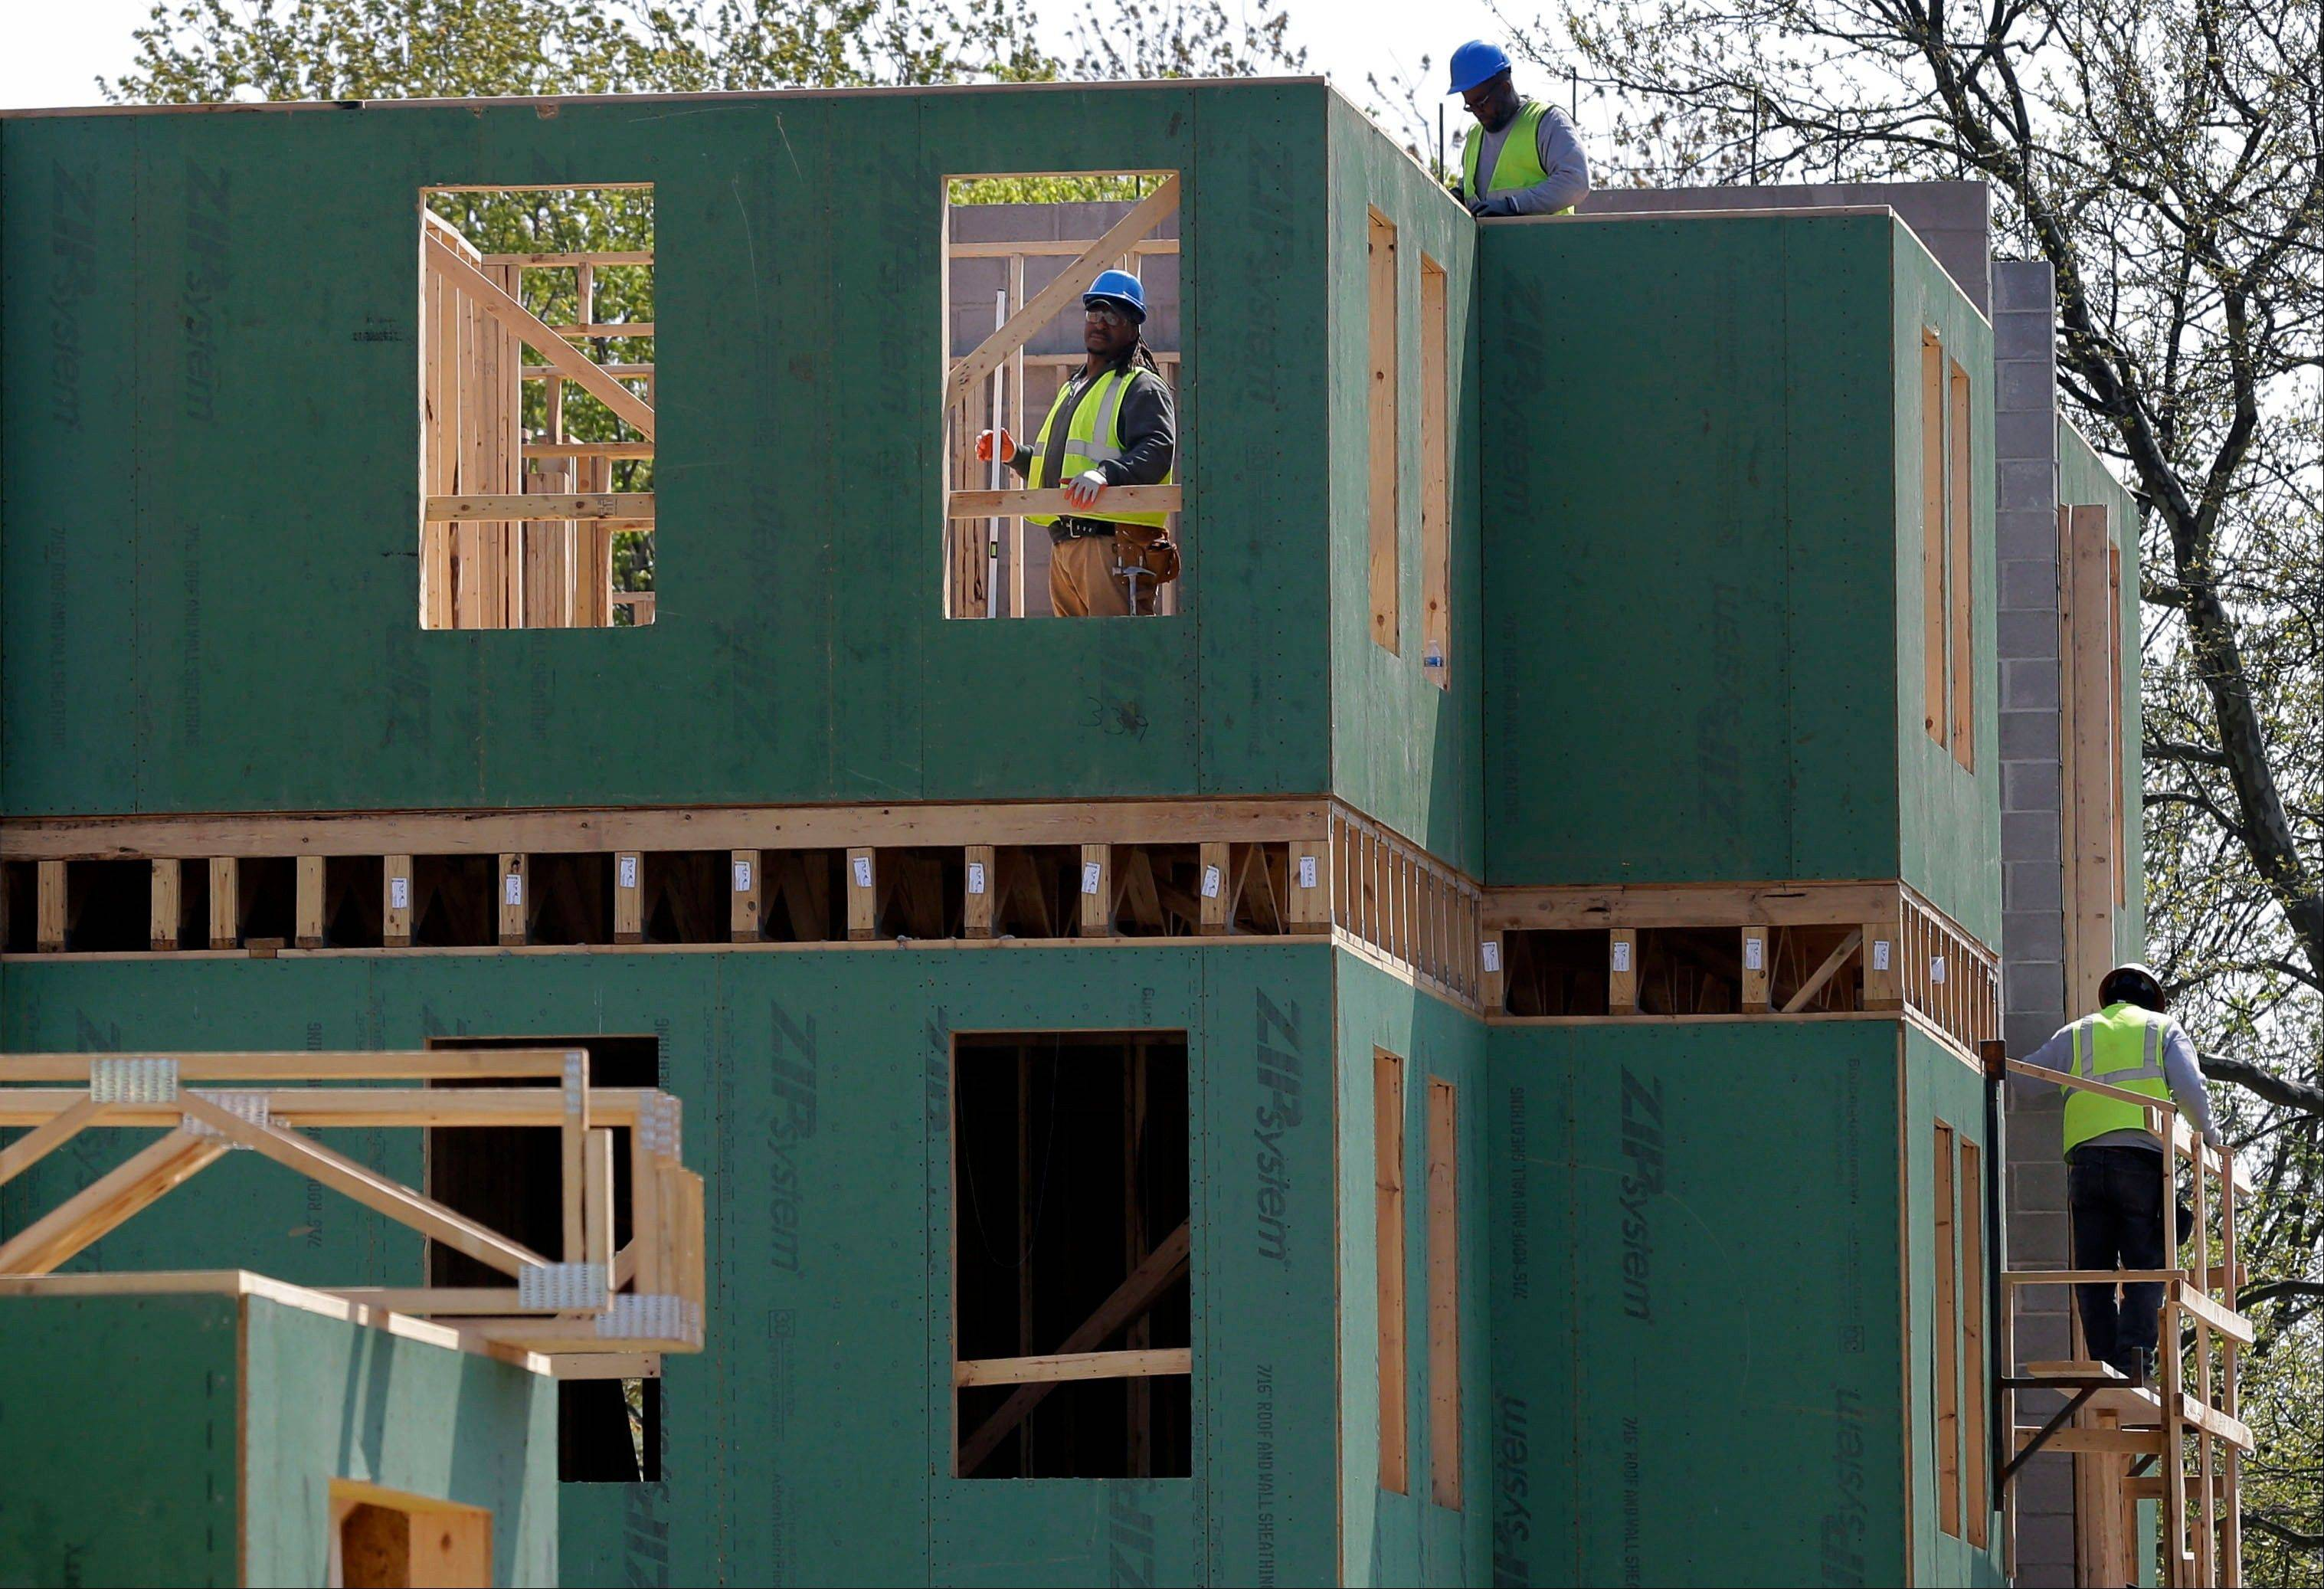 Sales of new homes rose in April to the second highest level since the summer of 2008 while the median price for a new home hit a record high, further signs that housing is recovering.